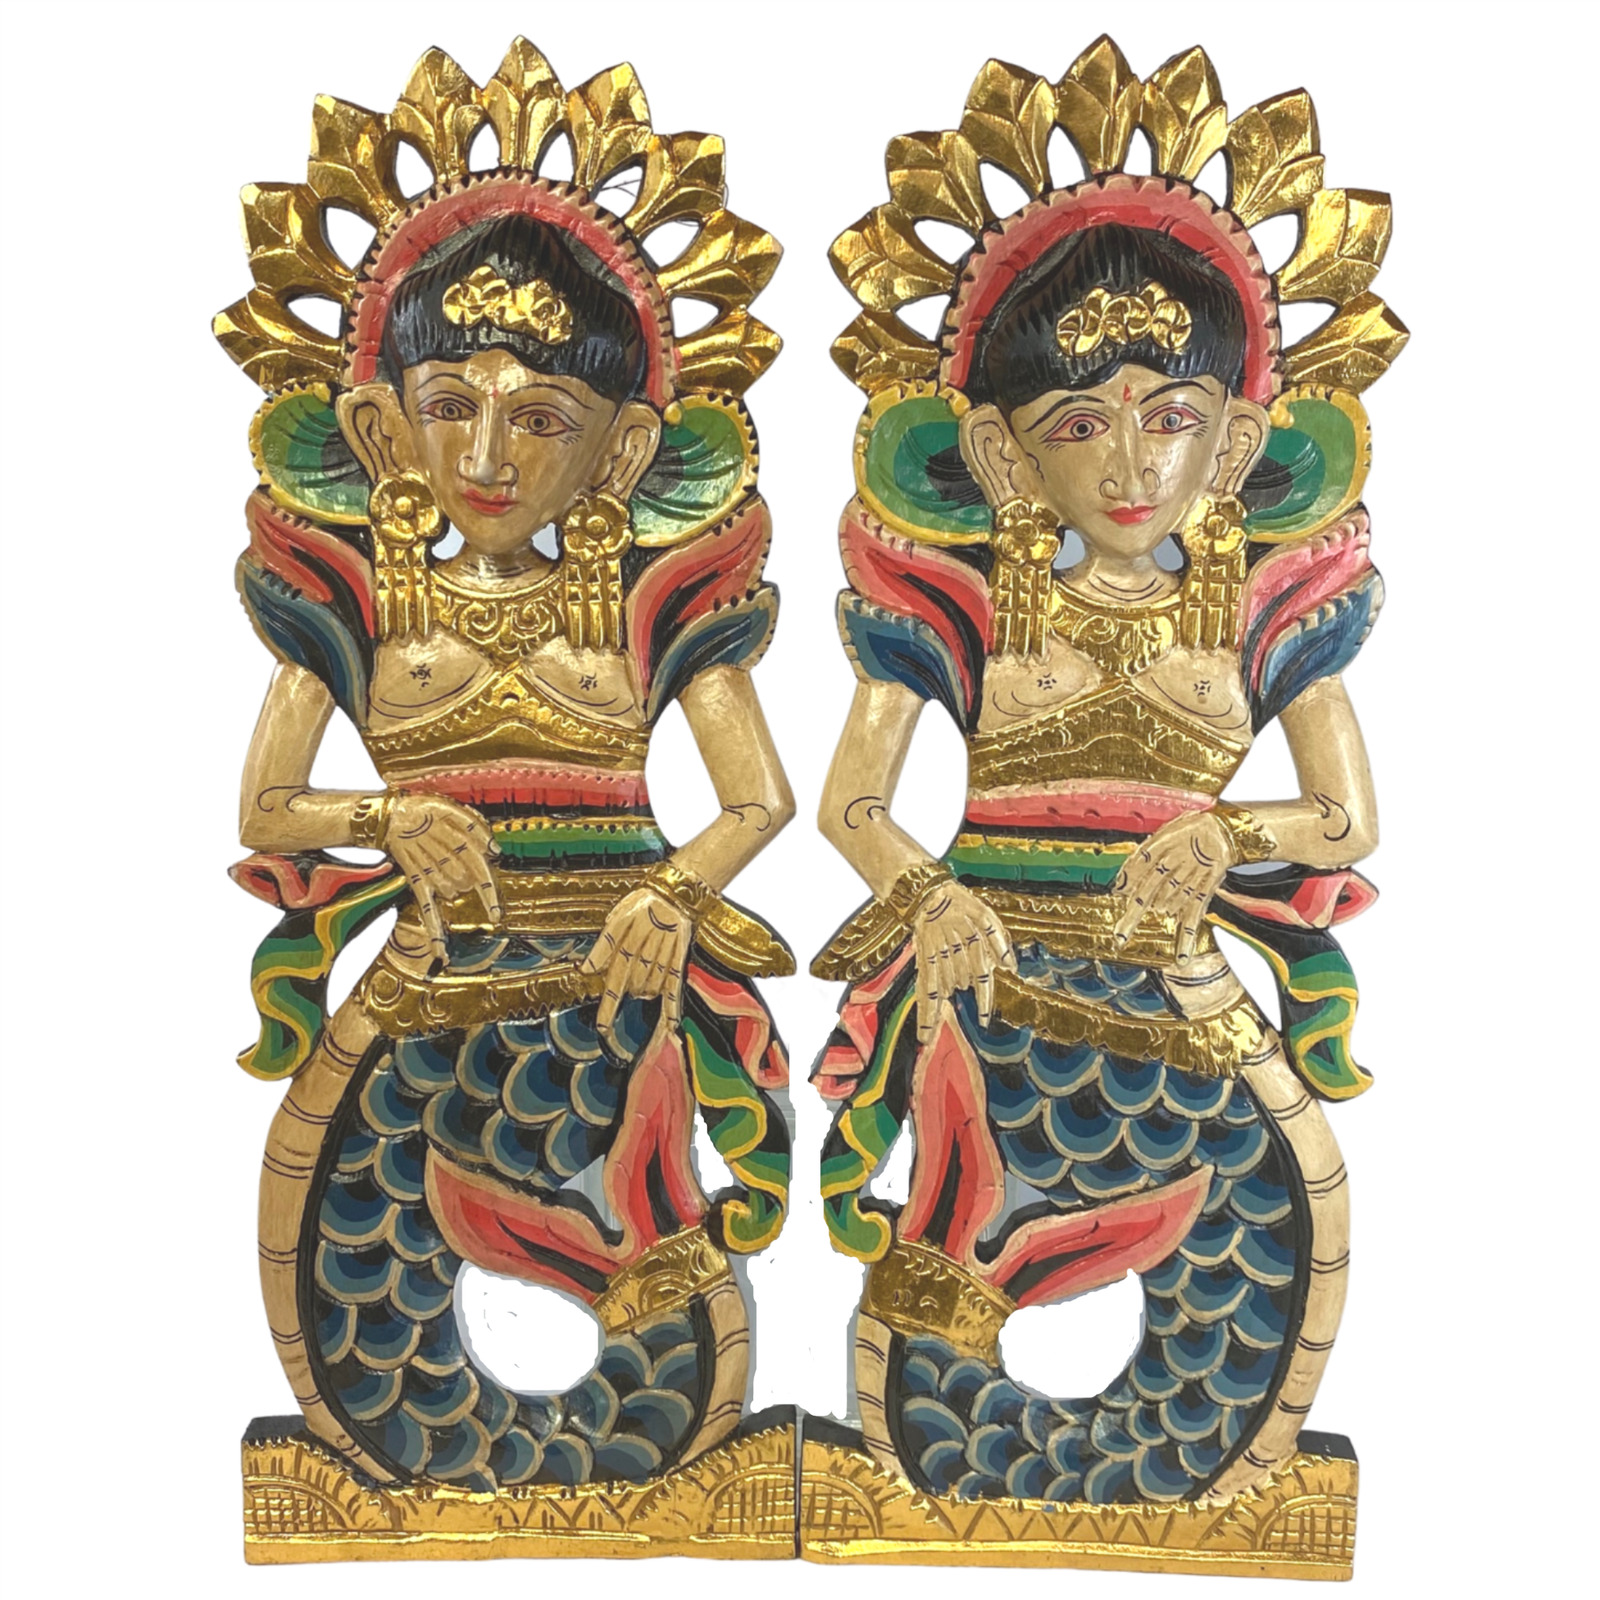 Balinese Mermaid Panel Dewi Sri Hand Carved Wood Bali Wall Art Decor Set 2 1 Of 6only 3 Available See More